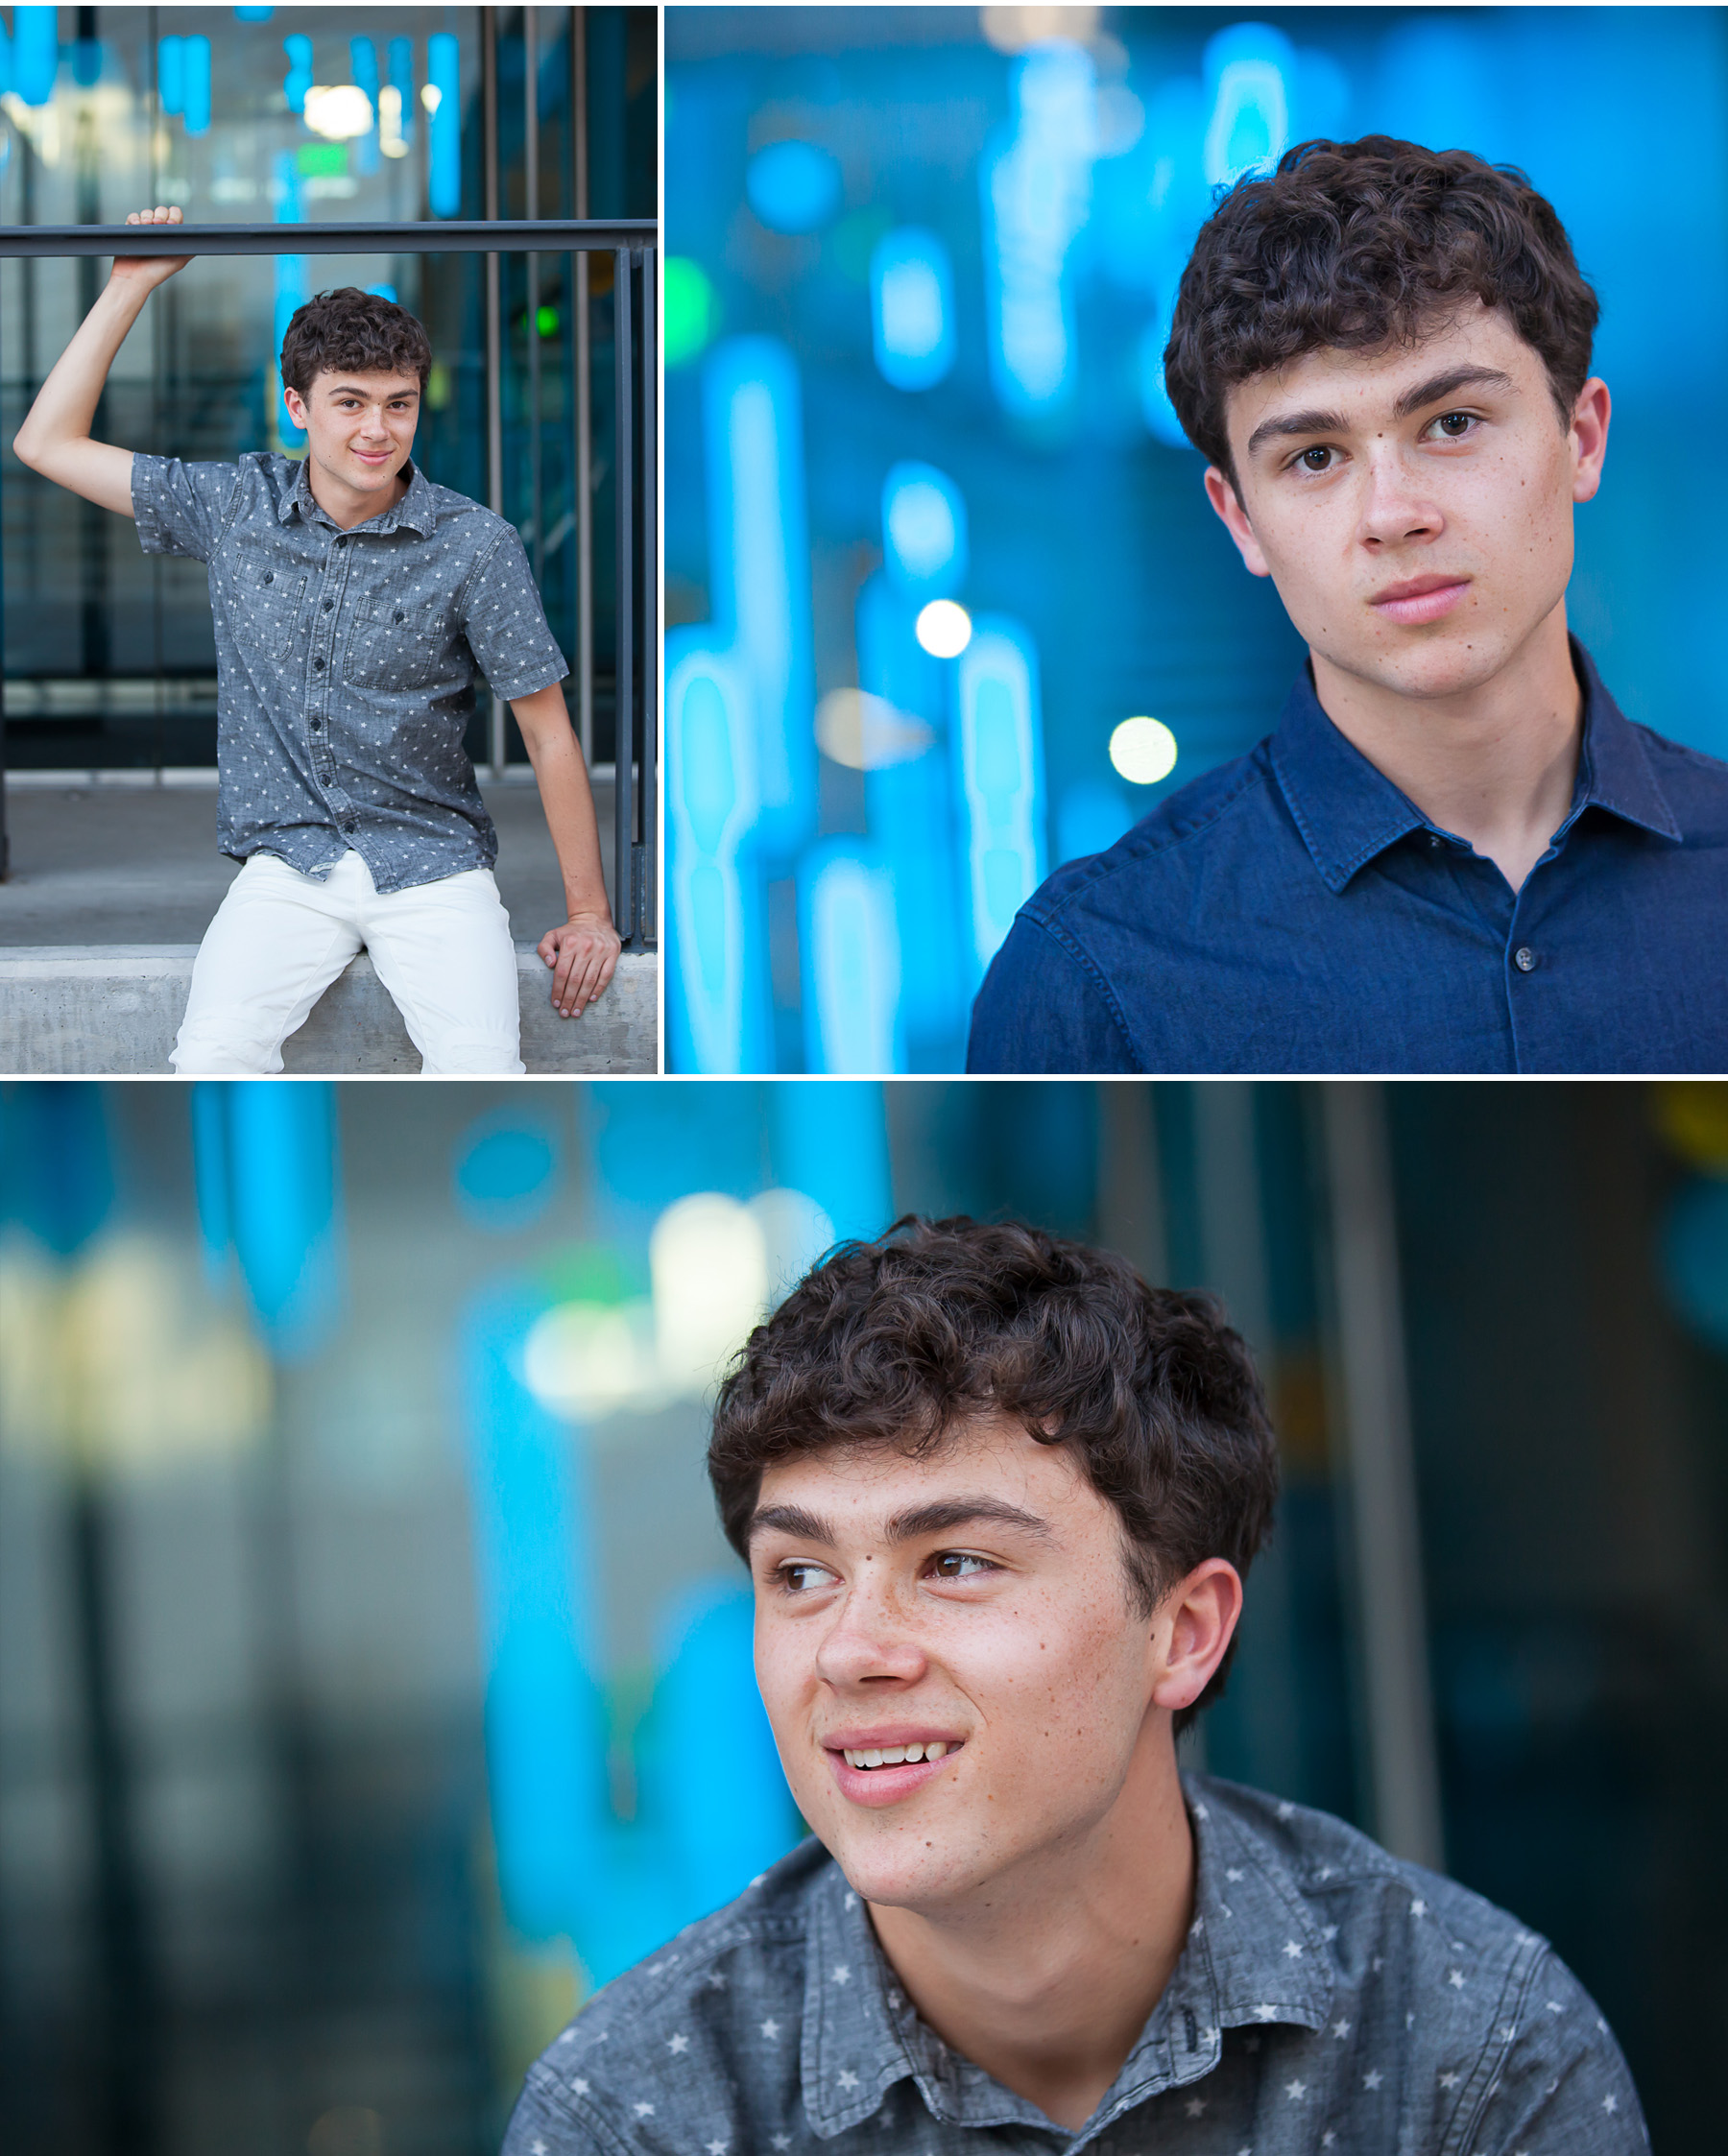 Urban Guy Senior Pictures with blue lights with Denver photographer Jennifer Koskinen, Merritt Portrait Studio